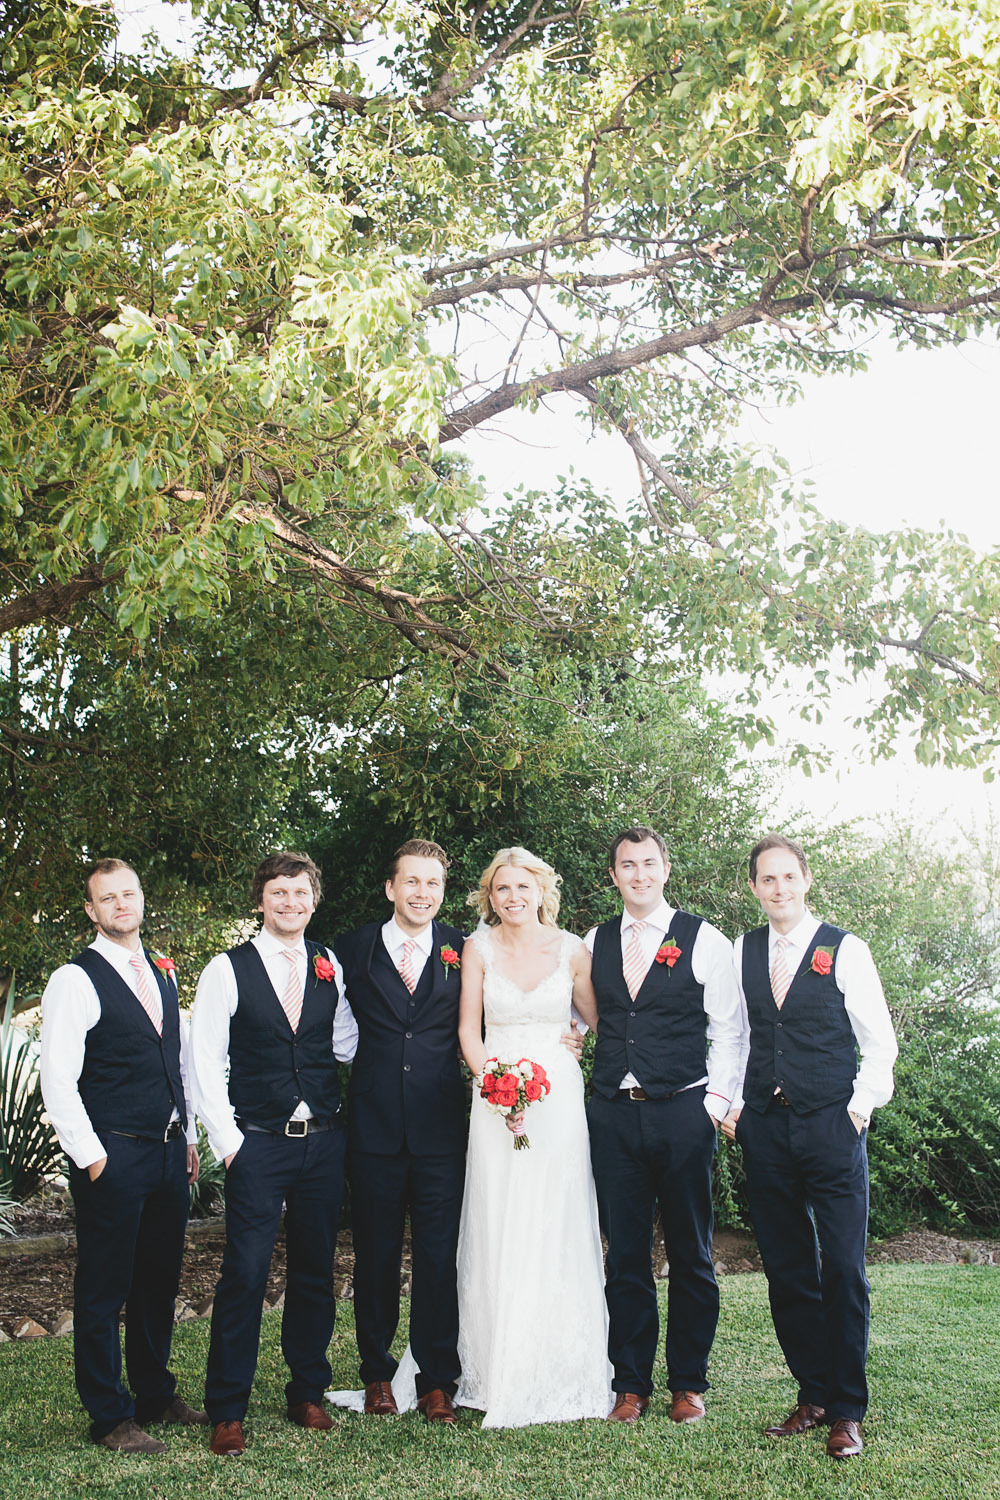 justin_aaron_sydney_cockatoo_island_wedding_photographer-61.jpg